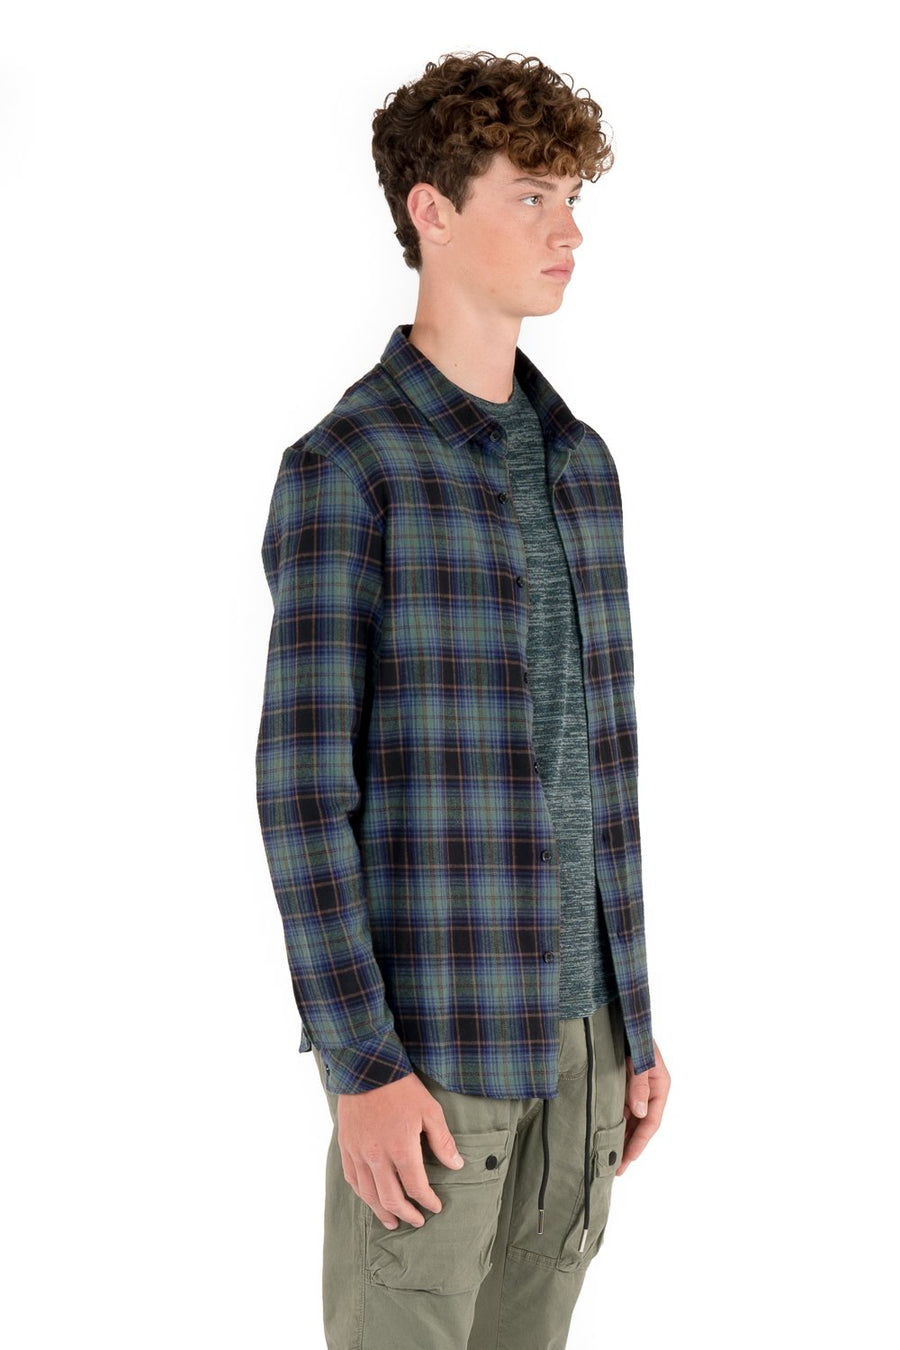 kuwalla tee proper plaid shirt green